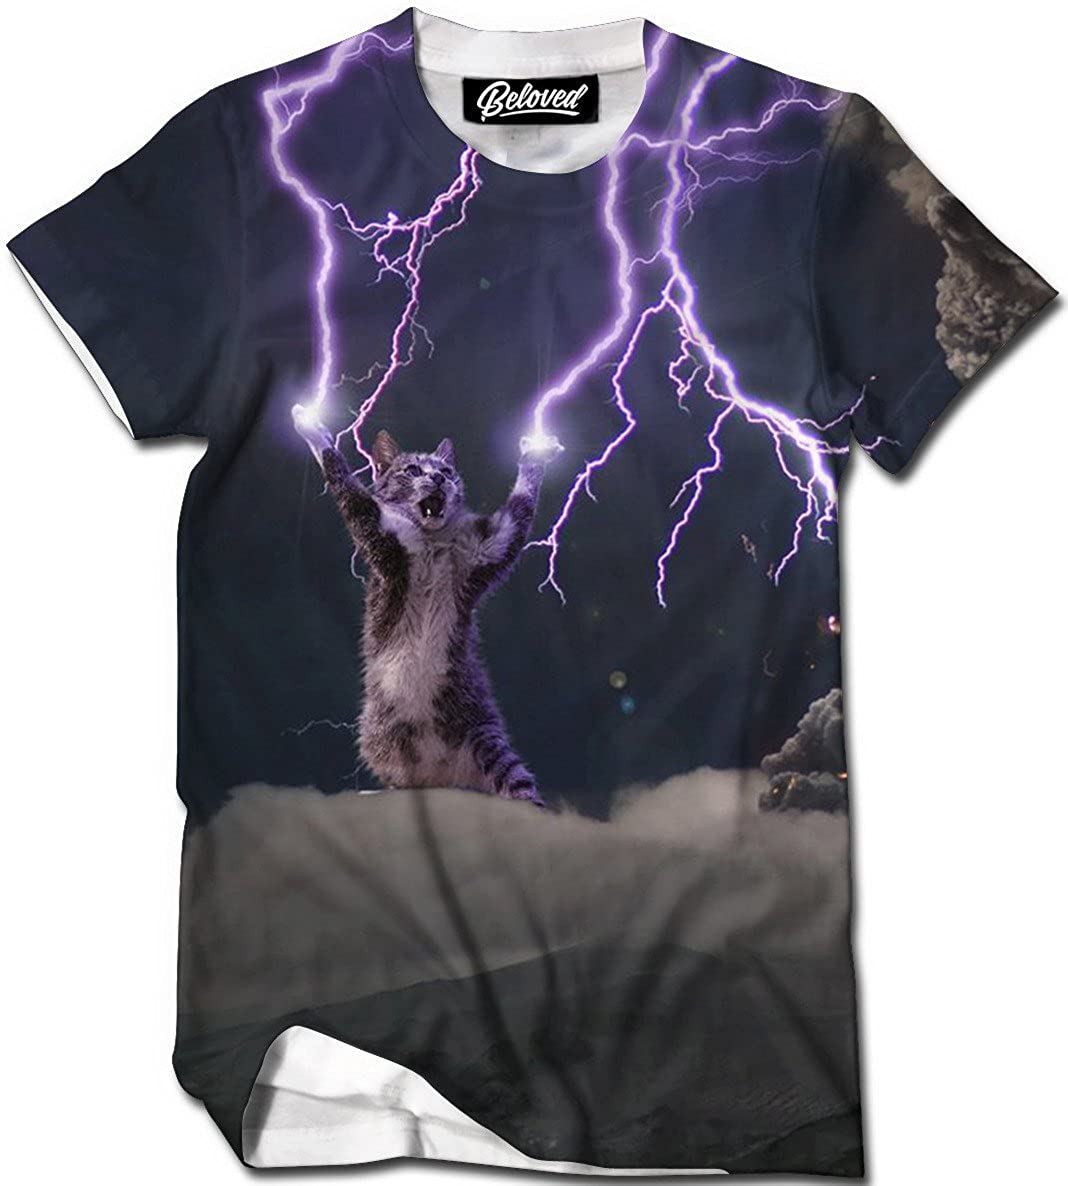 10196ea4b79 Beloved Shirts Lightning Cat T-Shirt - Premium All Over Print Graphic Tees